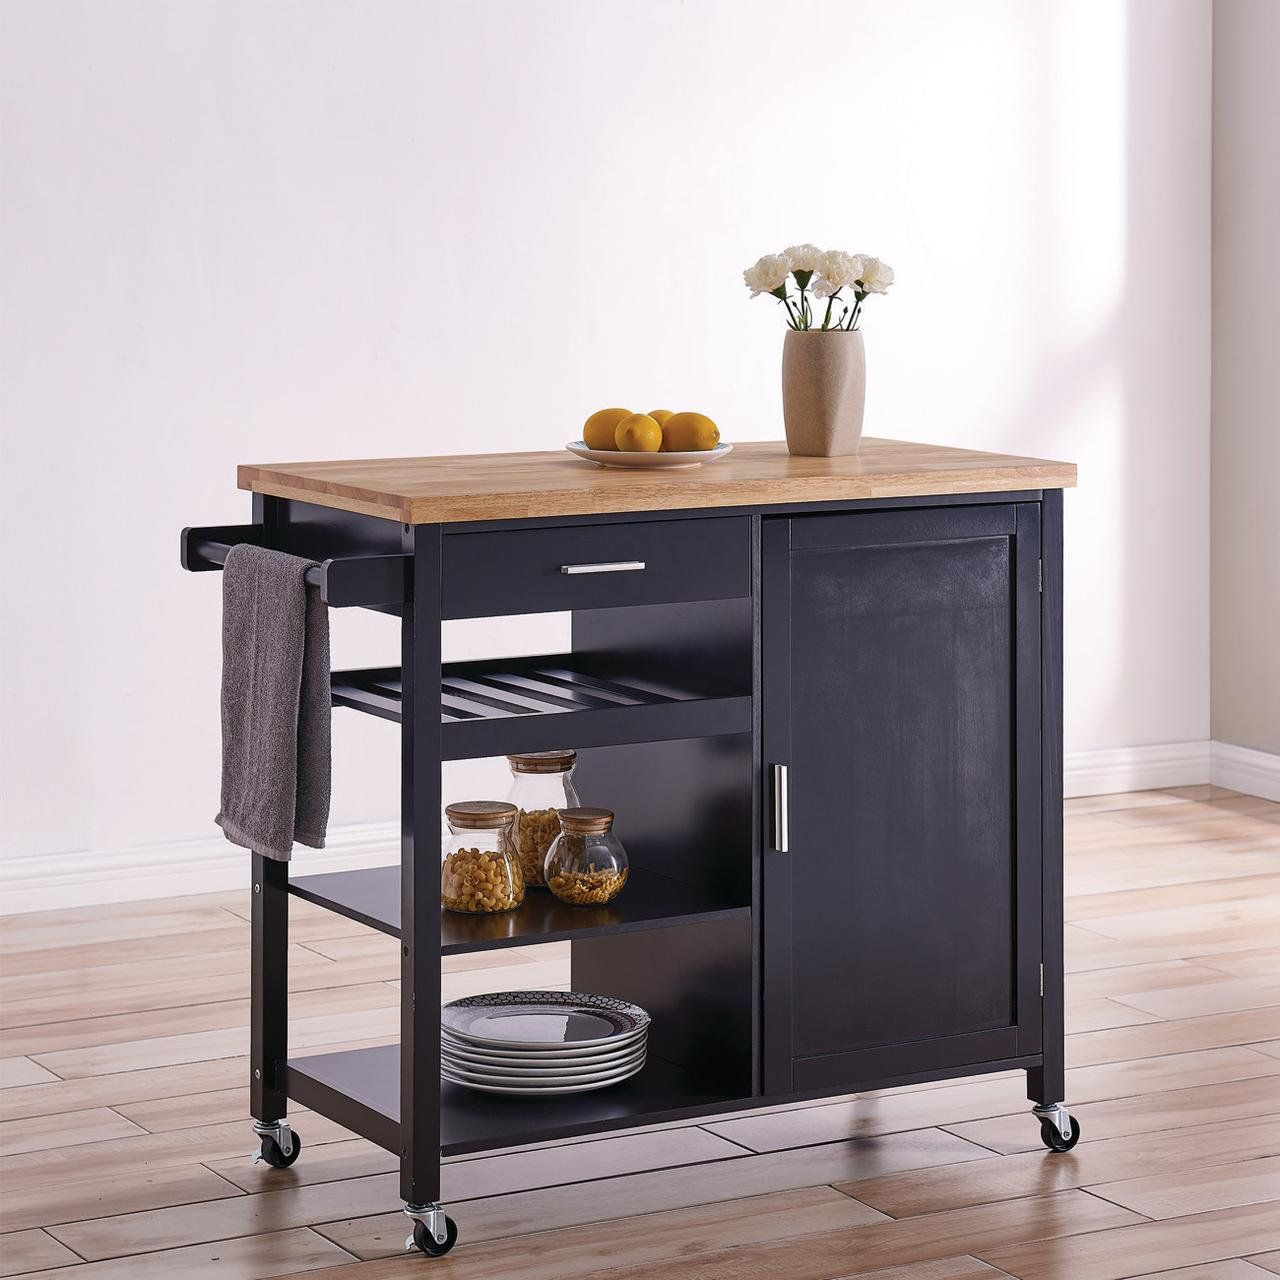 Belleze Wood Top Multi Storage Cabinet Rolling Kitchen Island Table Cart With Wheels Black Walmart Com Rolling Kitchen Island Kitchen Island Table Kitchen Cart